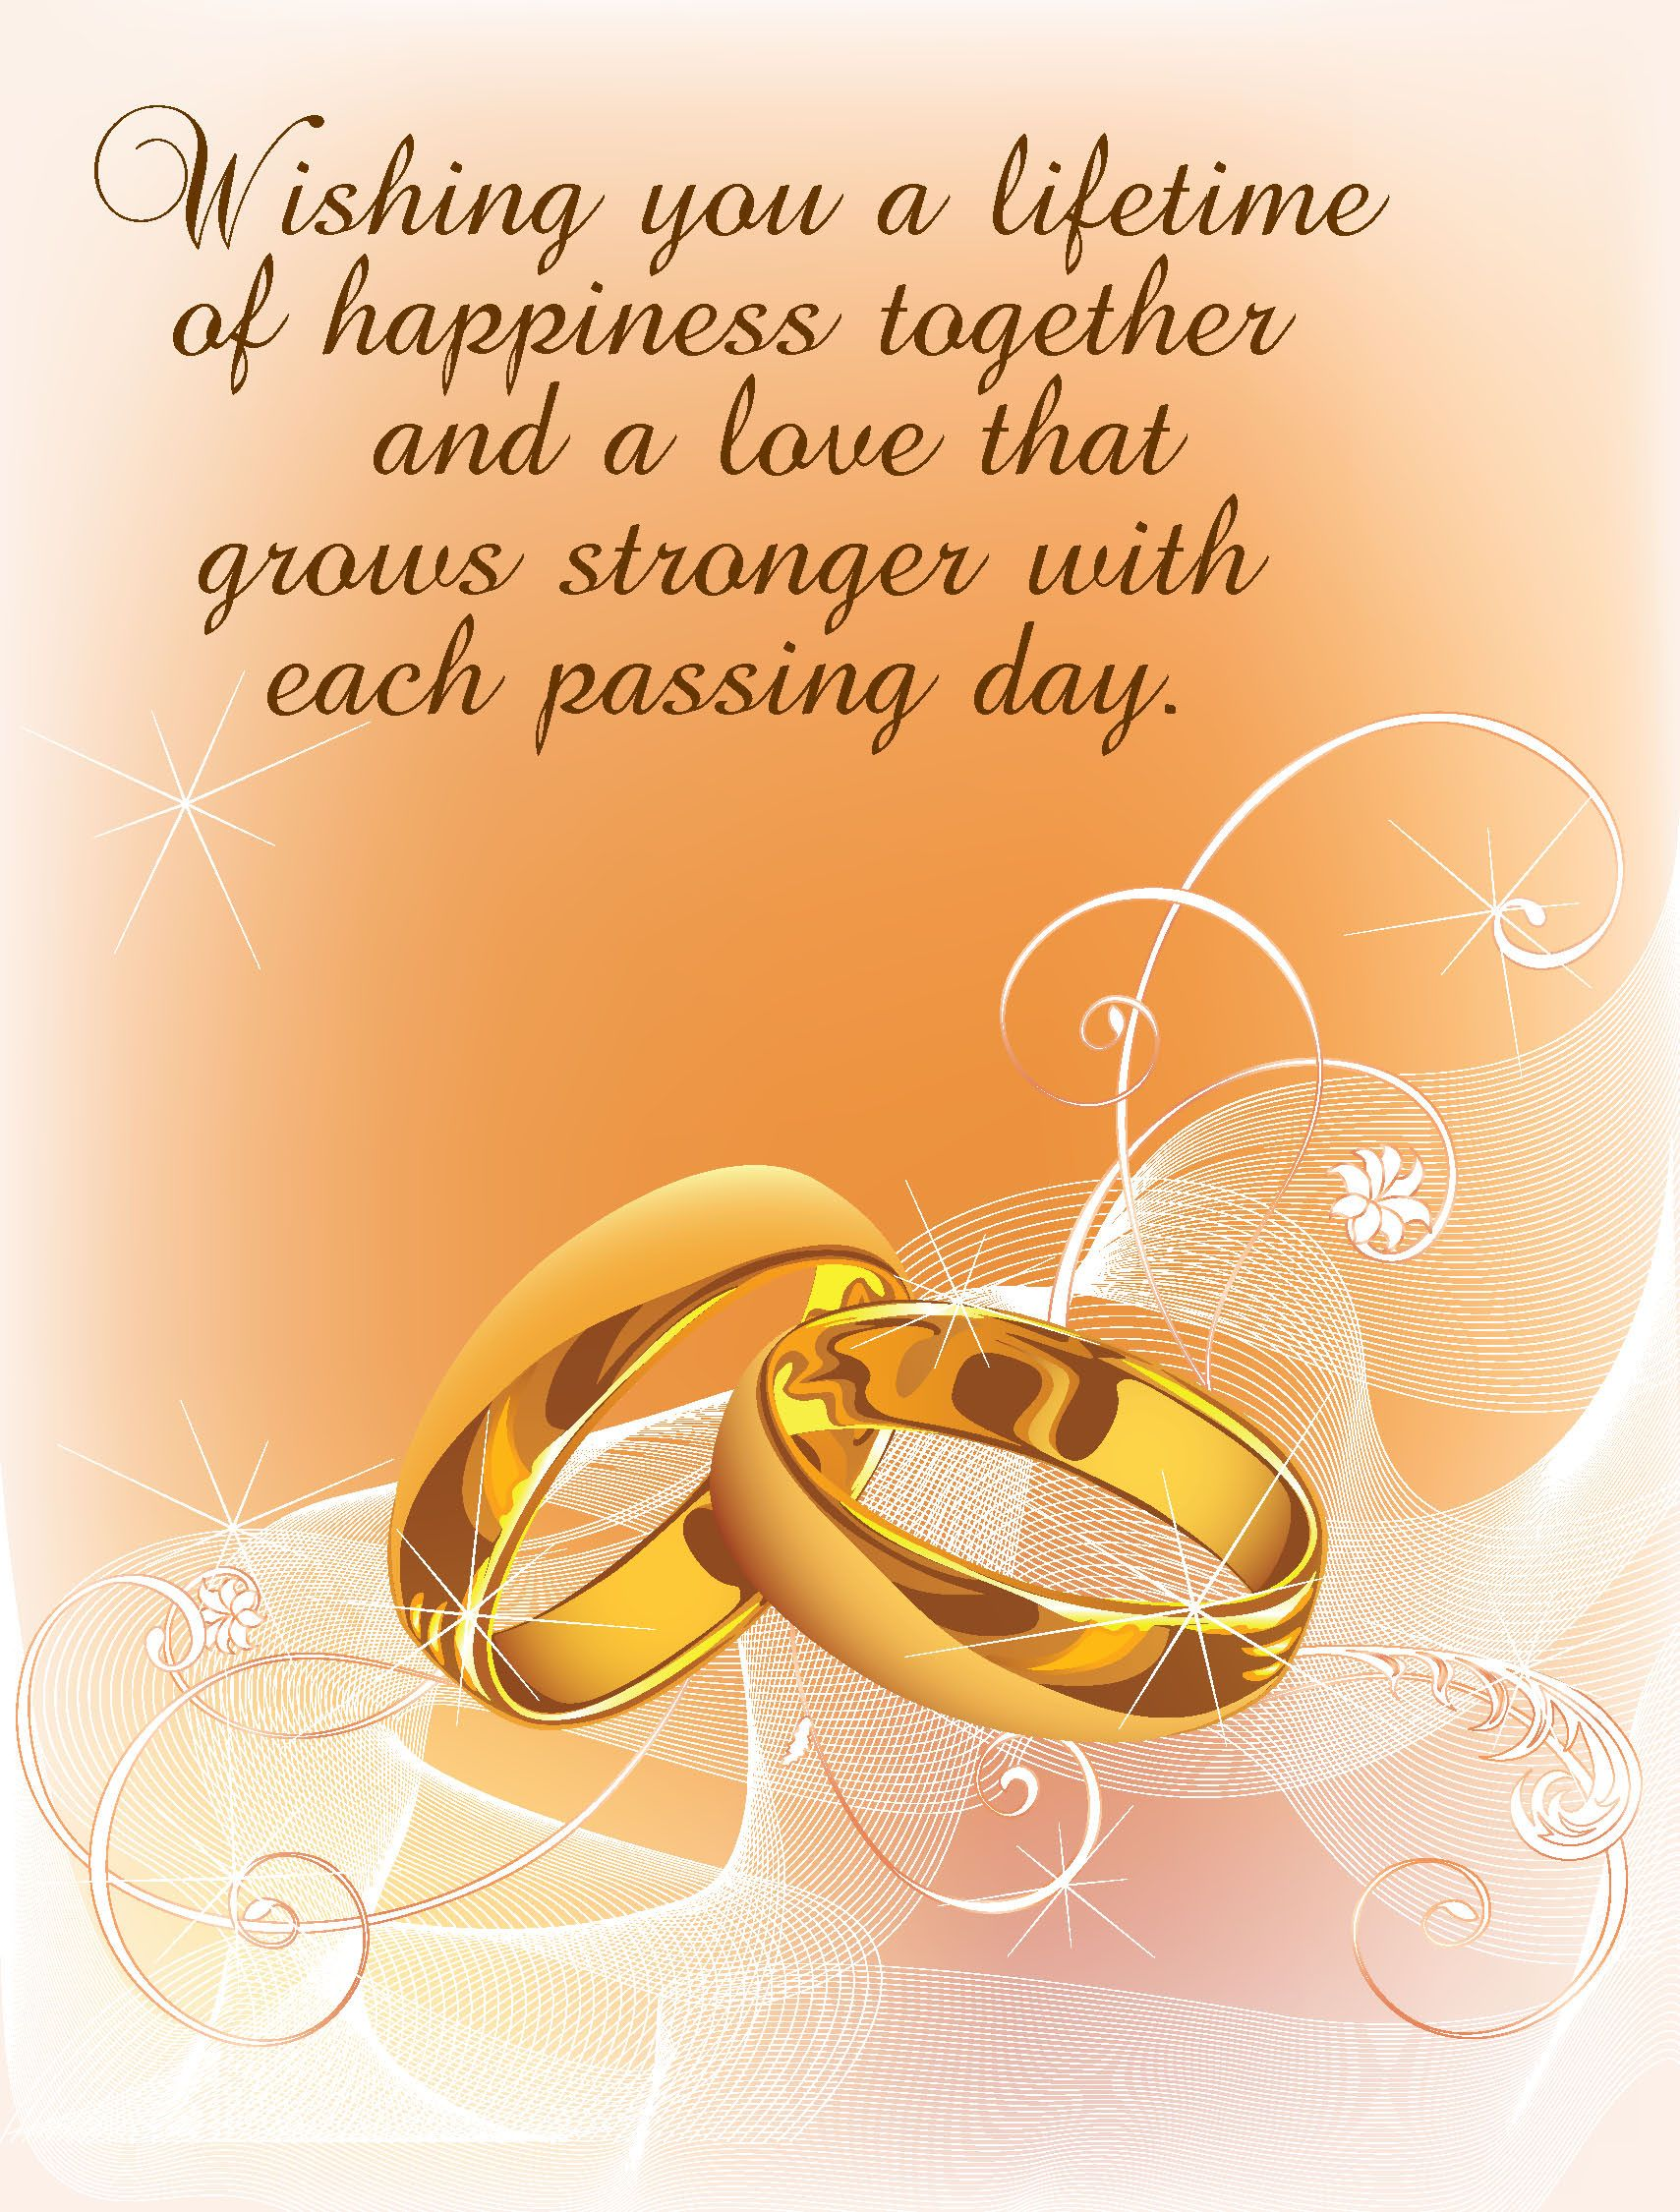 Wedding Card Wishes.Memorable Wedding Wedding Wishes Quotes Becky S Wedding